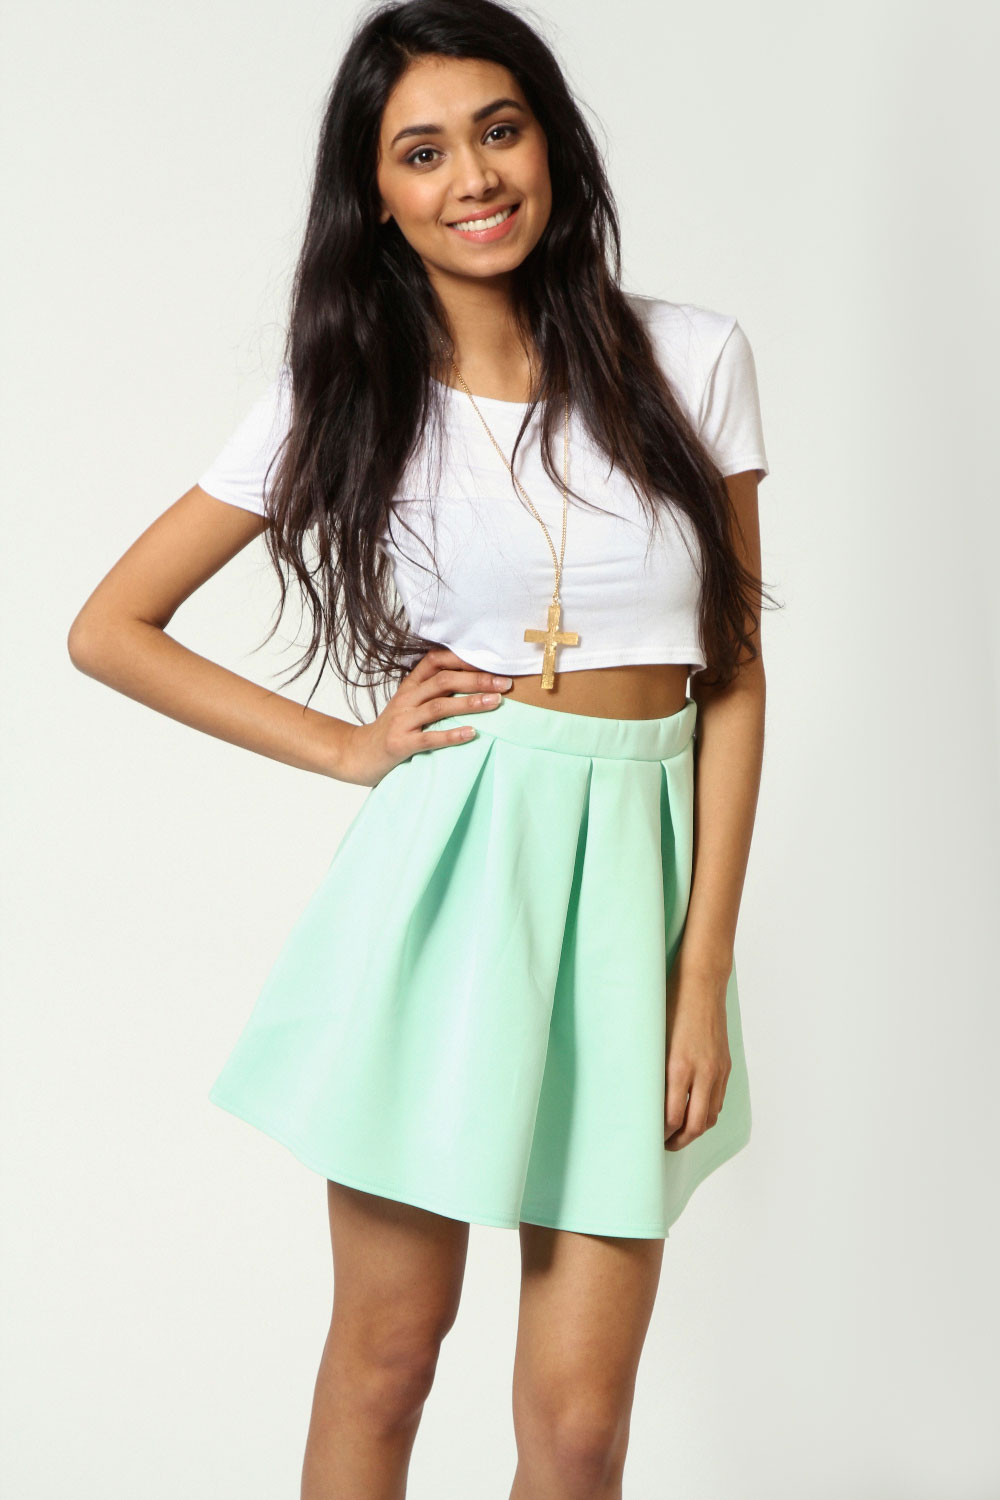 Guys what do you think of skater skirts? - GirlsAskGuys